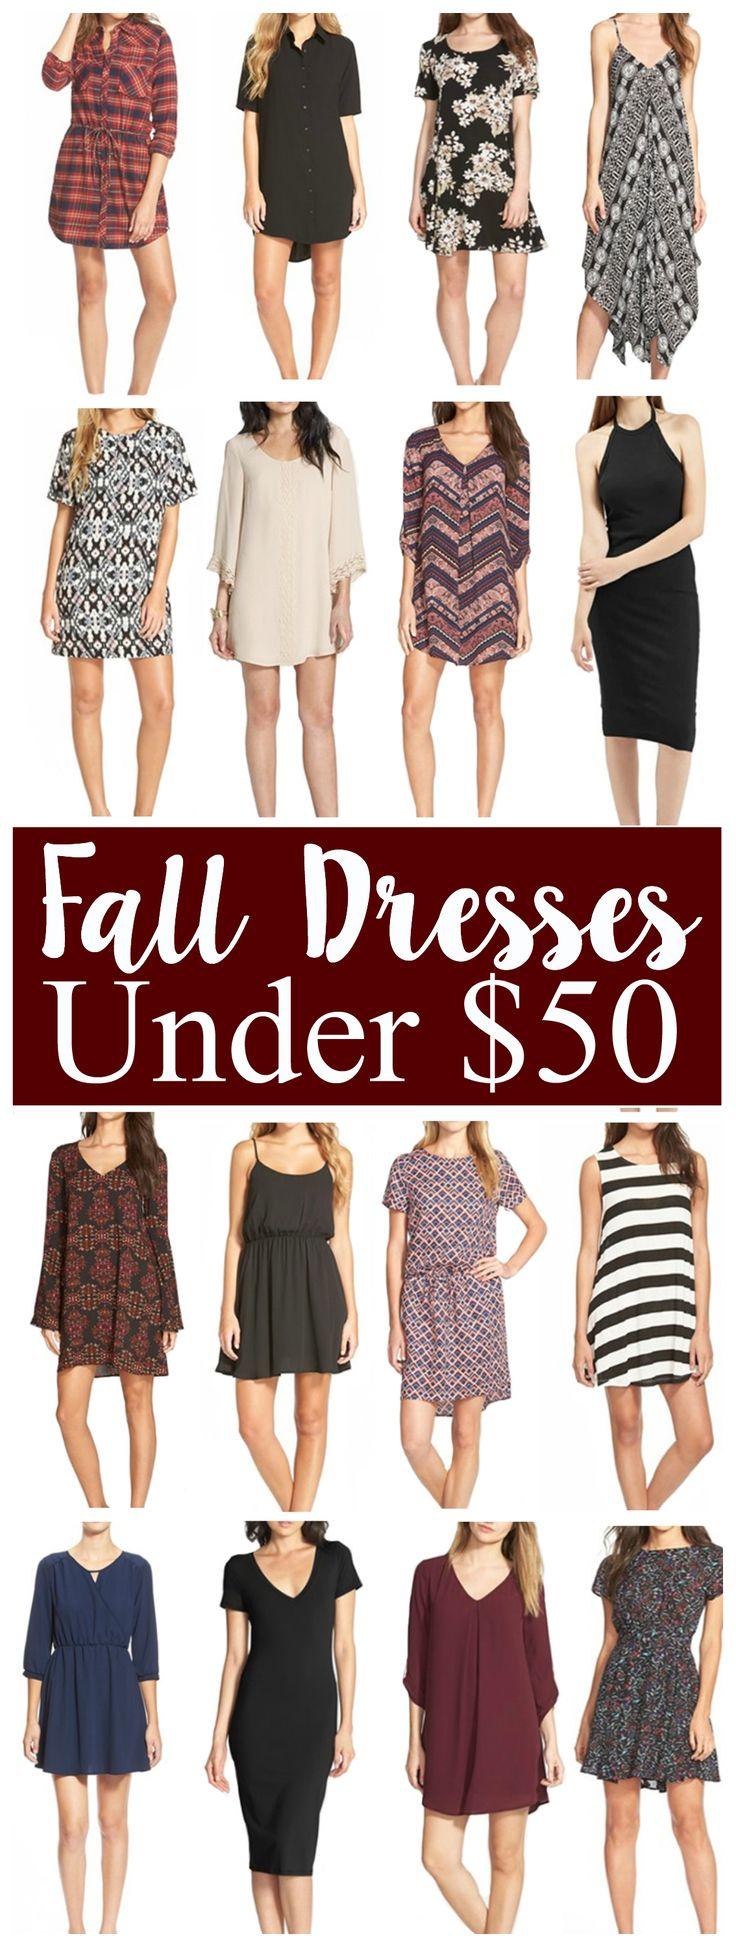 The cutest Fall dresses under $50!